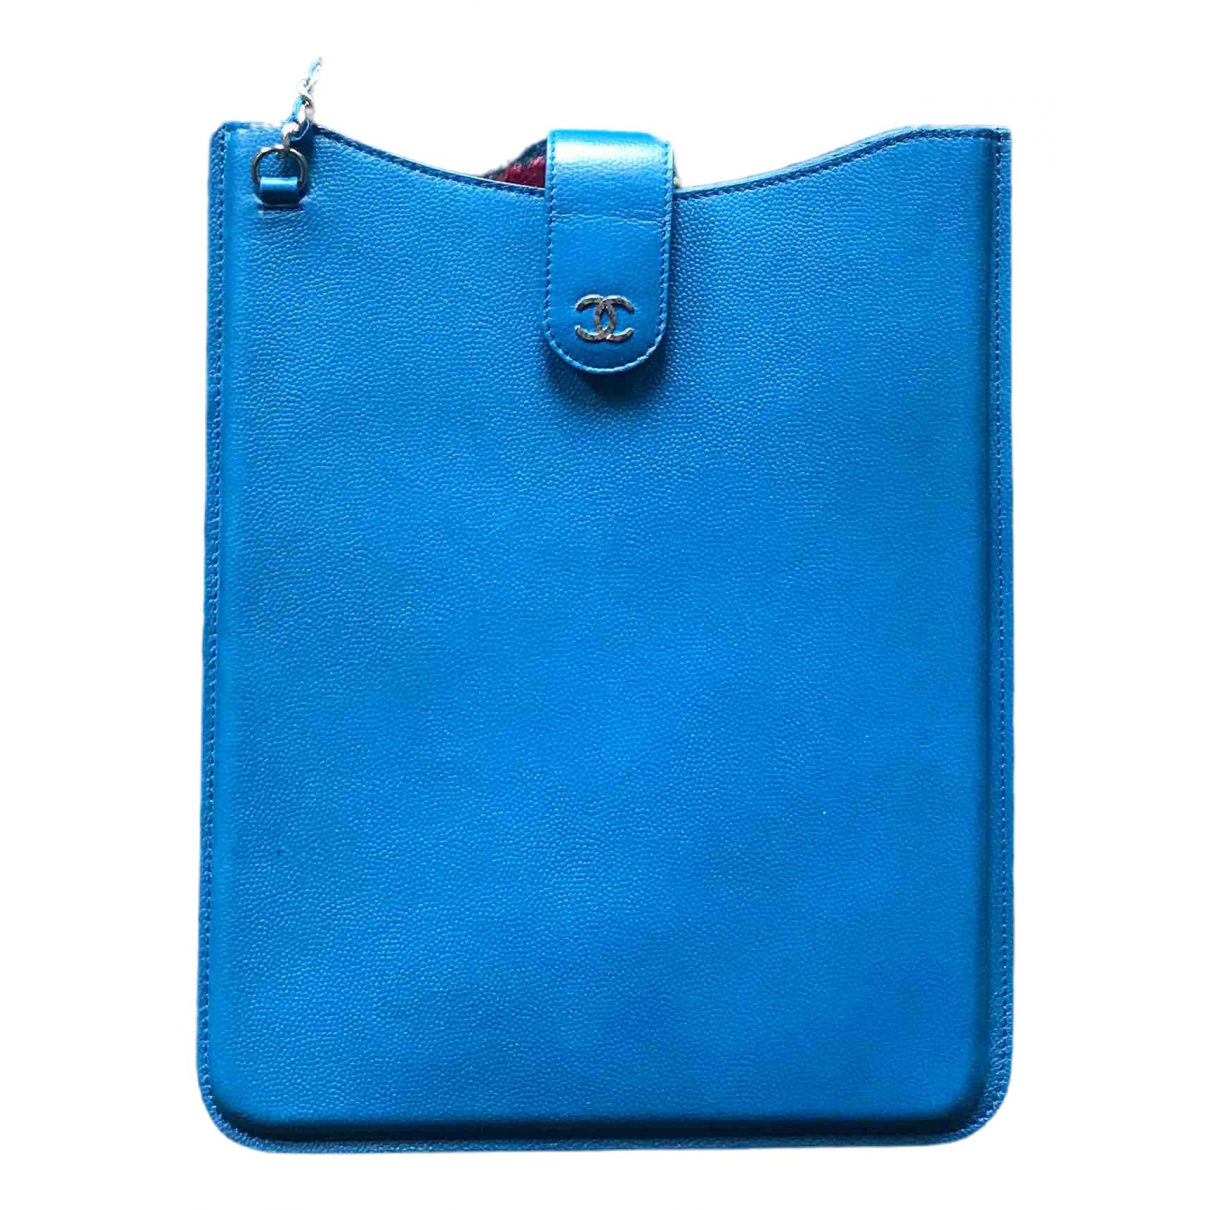 Chanel N Blue Leather Accessories for Life & Living N